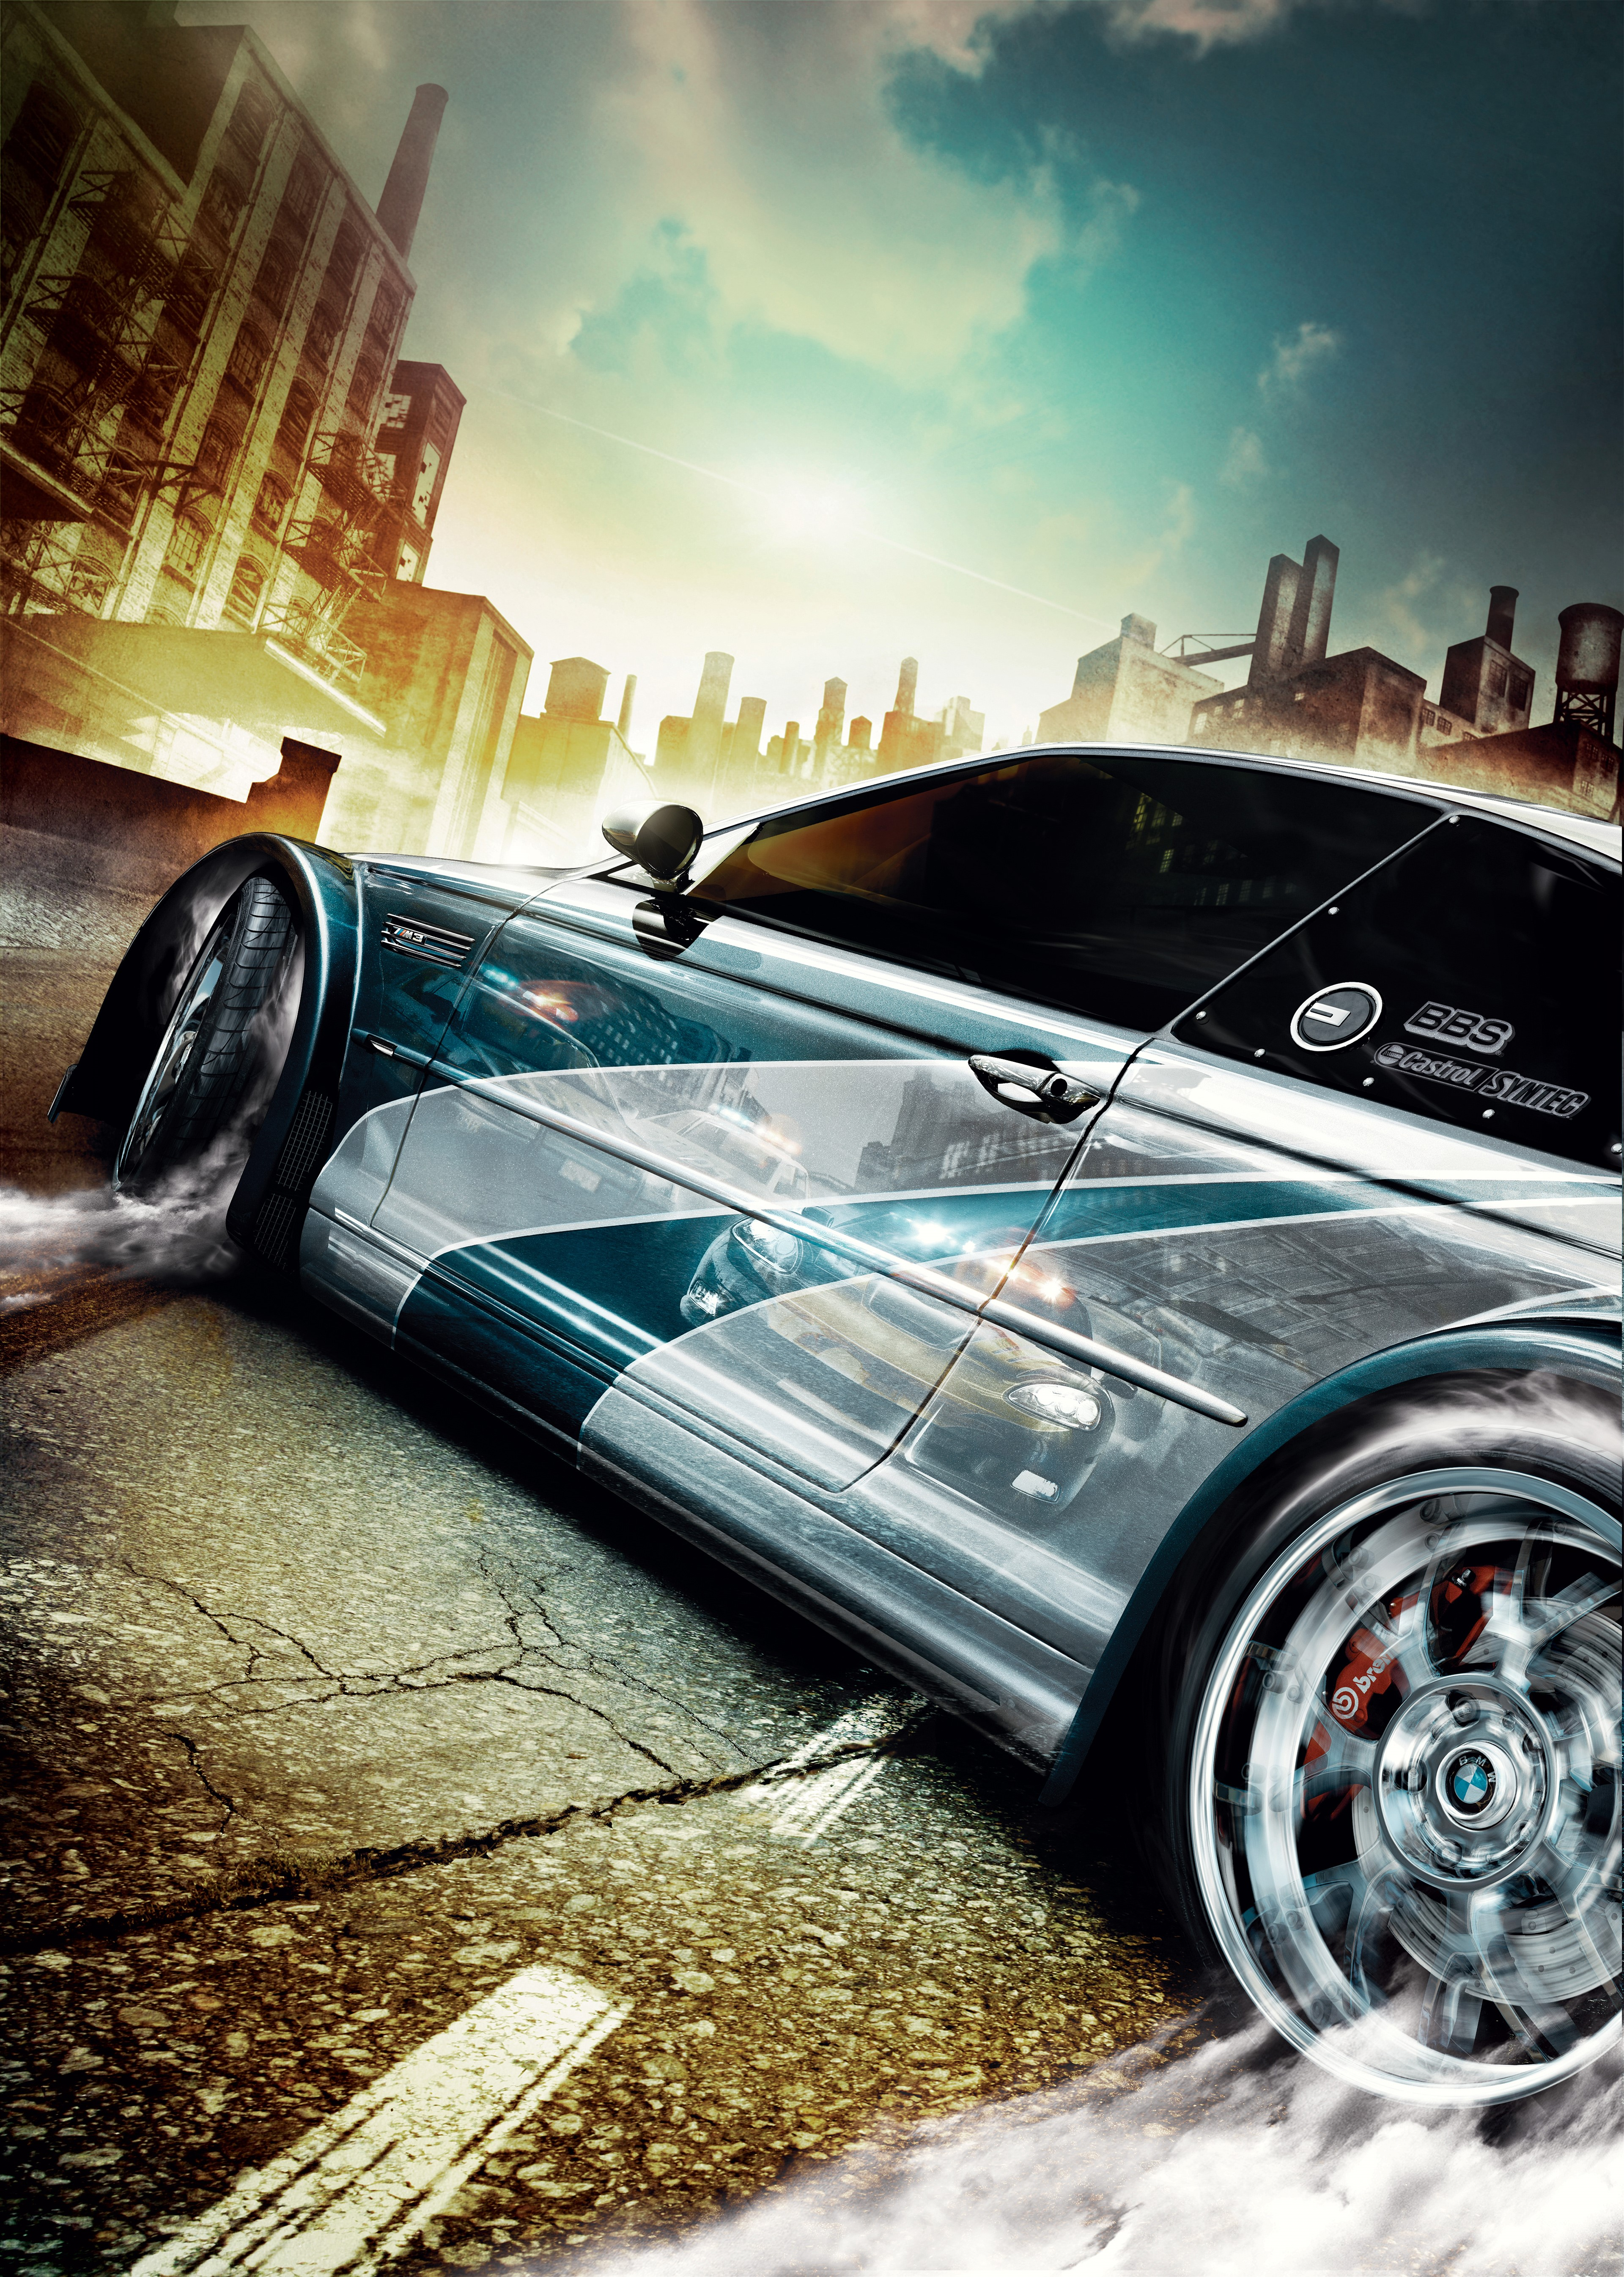 I Found Need For Speed Underground 1 2 Most Wanted And Carbon Hi